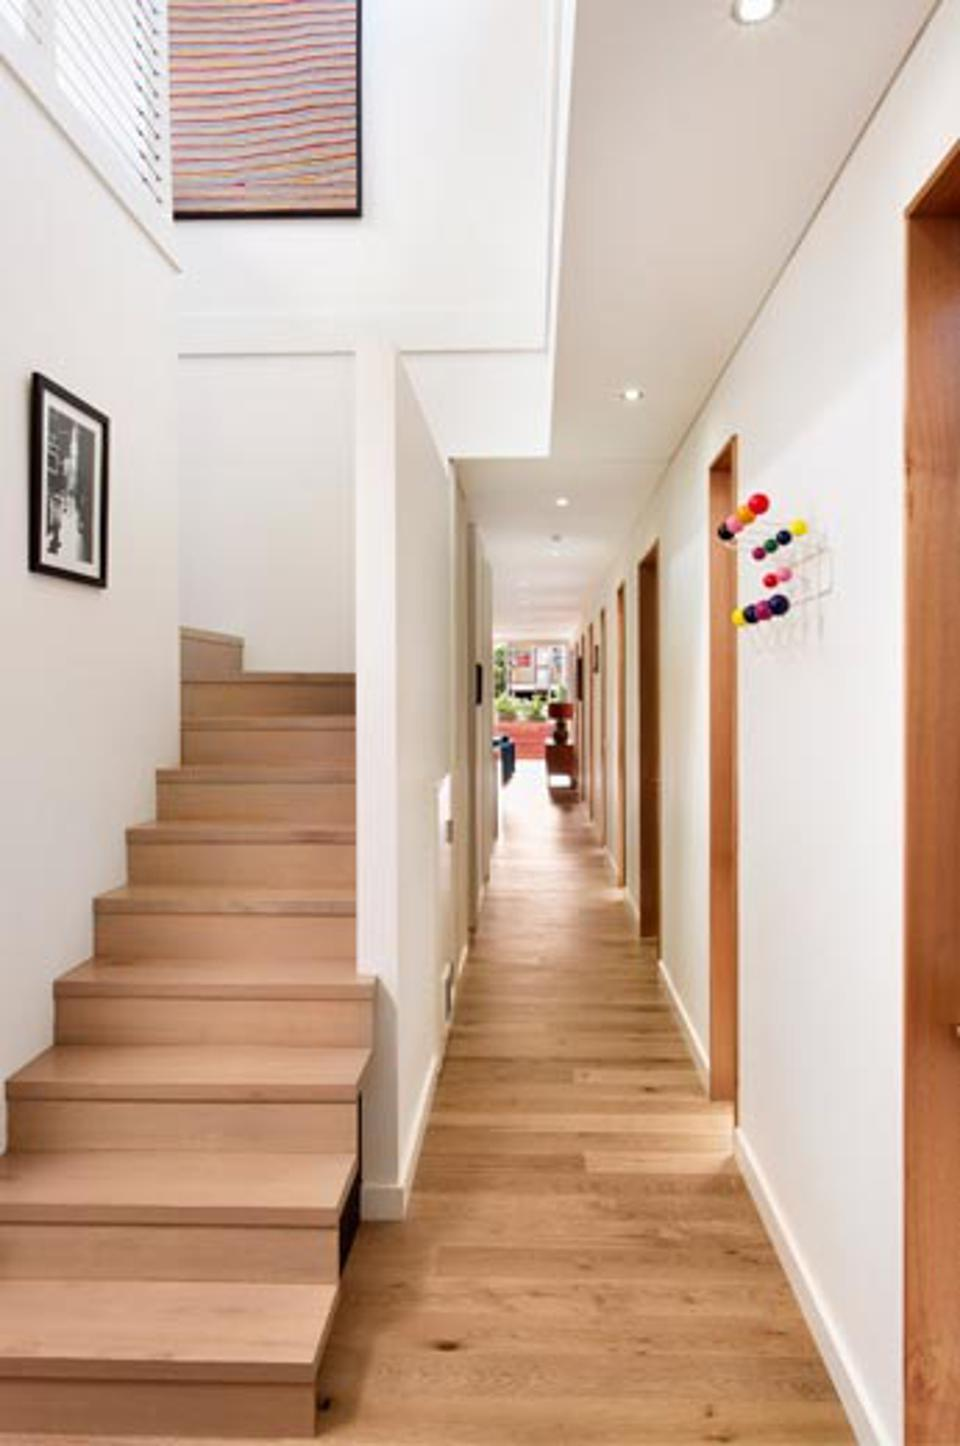 It was a particular challenge to have the stairs meet to the millimeter – which the installation set crew was able to do.